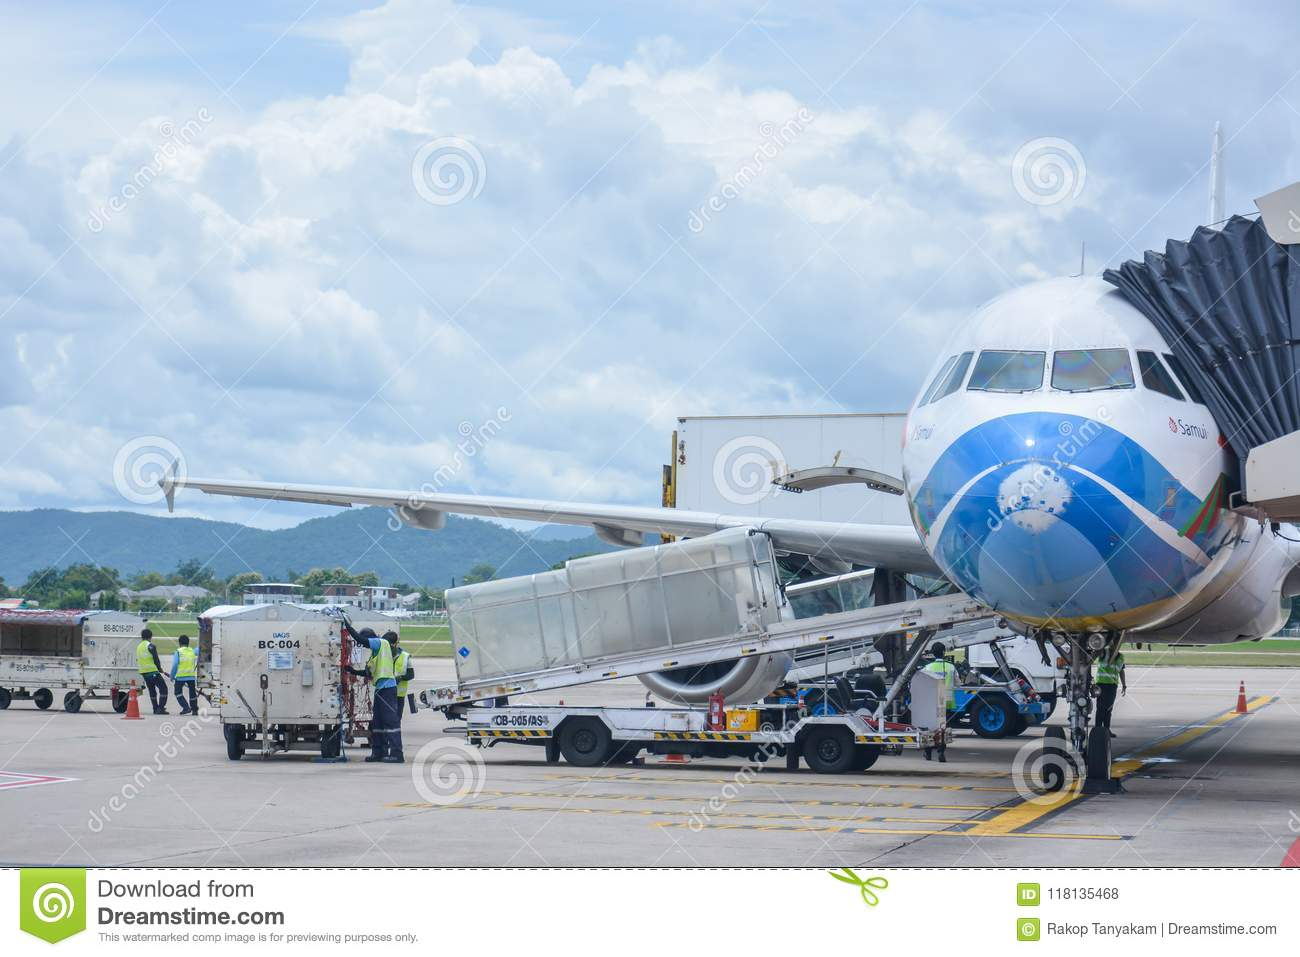 Bangkok Airways plane loading baggage and ready to fly